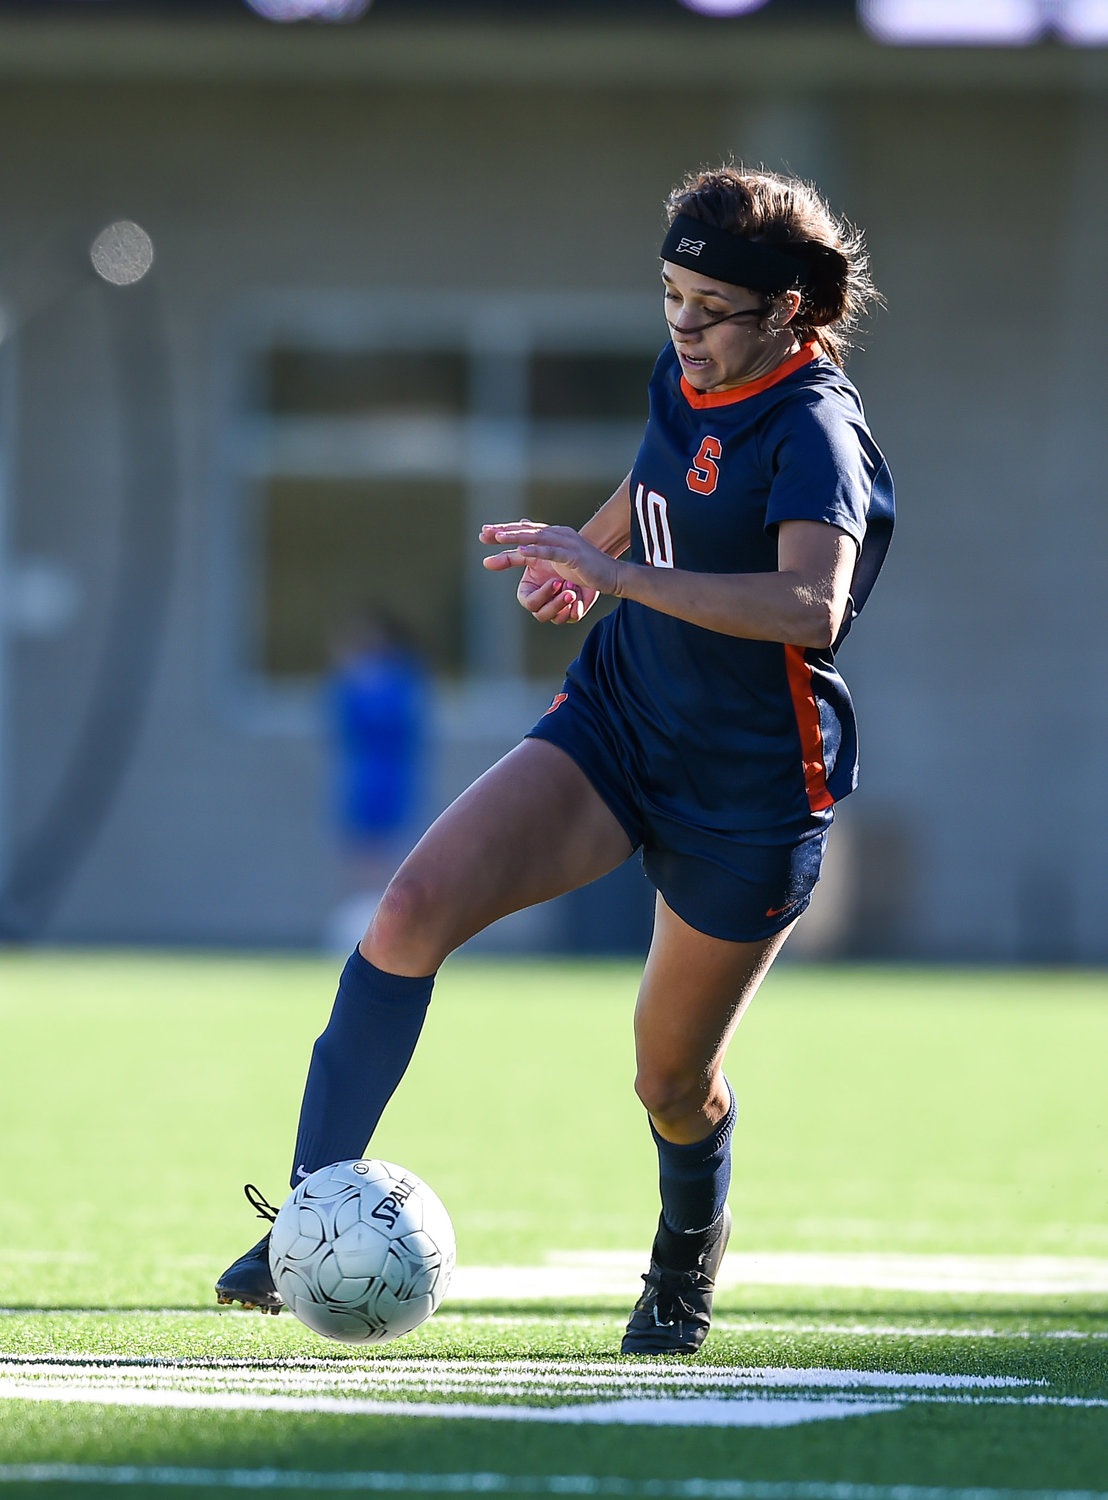 Katy Tx. Jan. 11, 2020: Seven Lakes Arianna Ghafari (10) advancing the ball during the I-10 Soccer Shootout in a match between Seven Lakes and George Ranch at Legacy Stadium in Katy. (Photo by Mark Goodman / Katy Time)